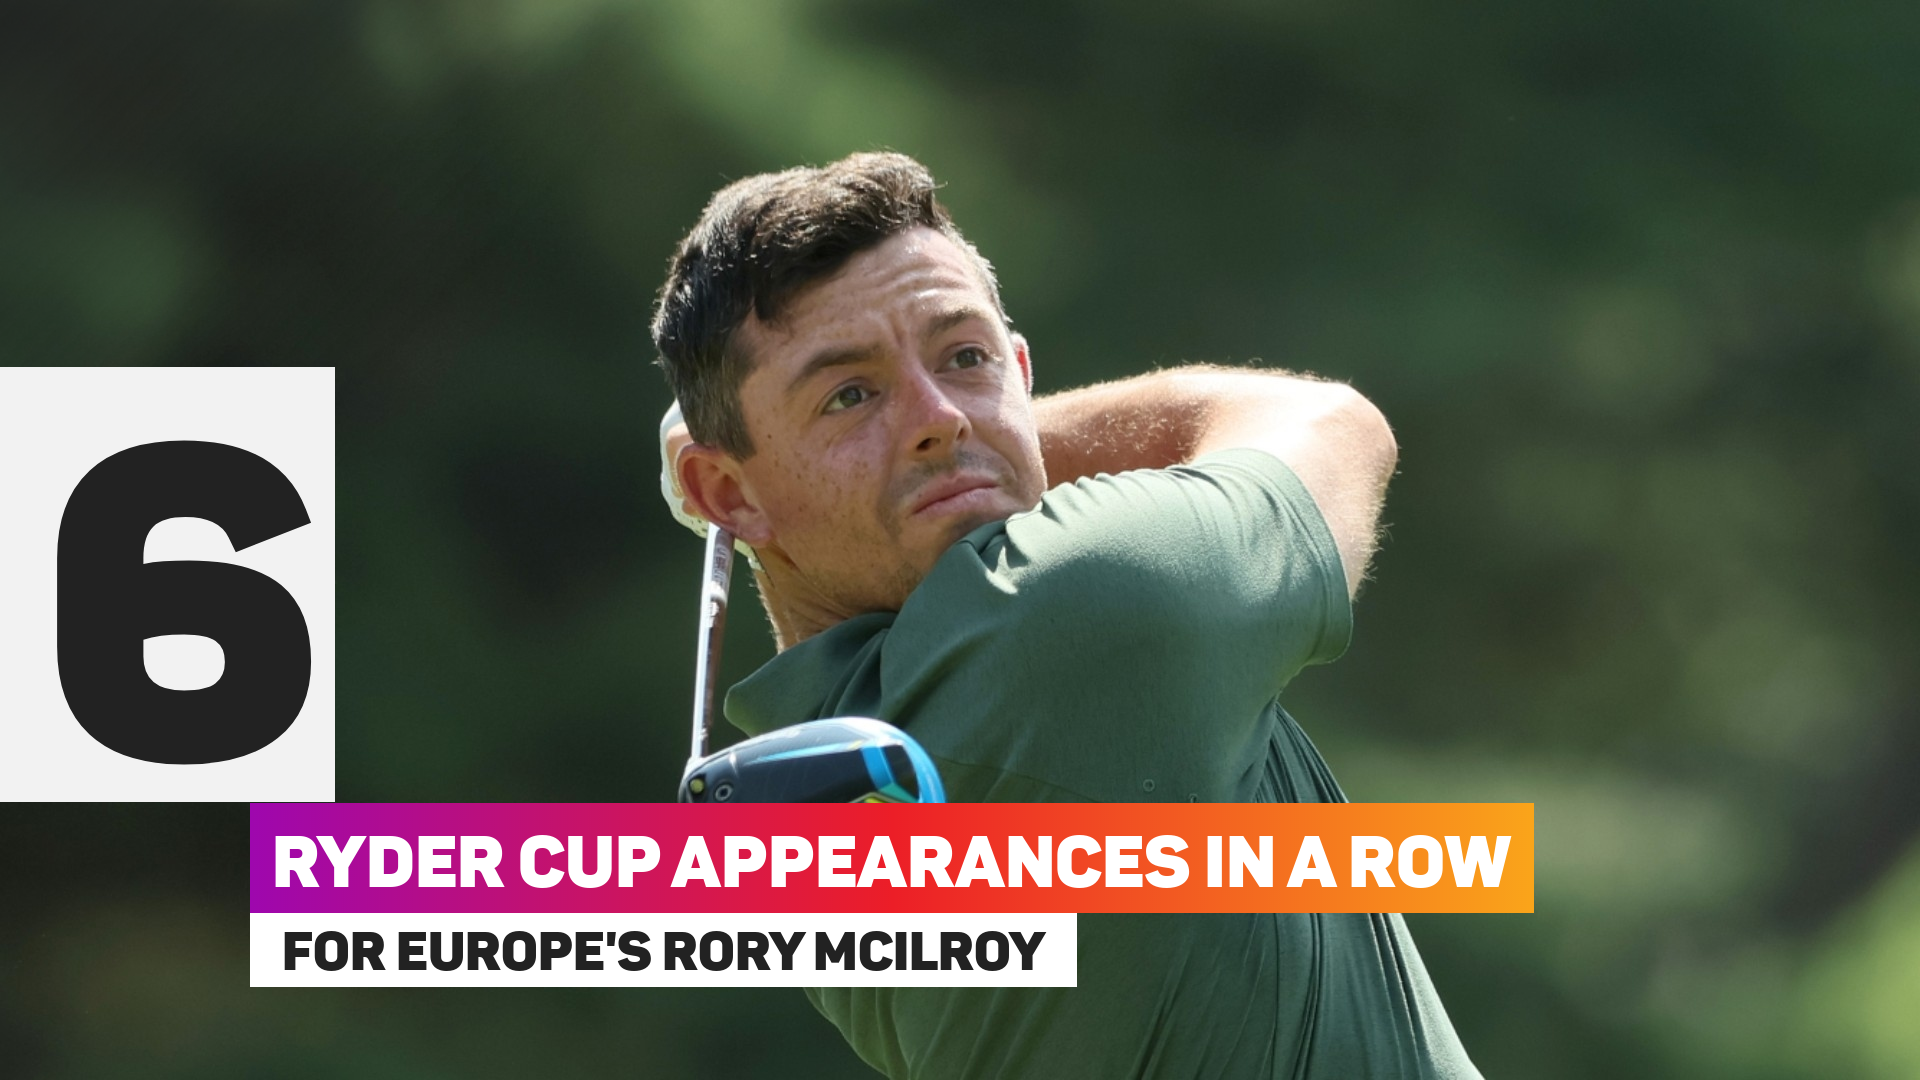 Rory McIlroy is appearing in his sixth successive Ryder Cup